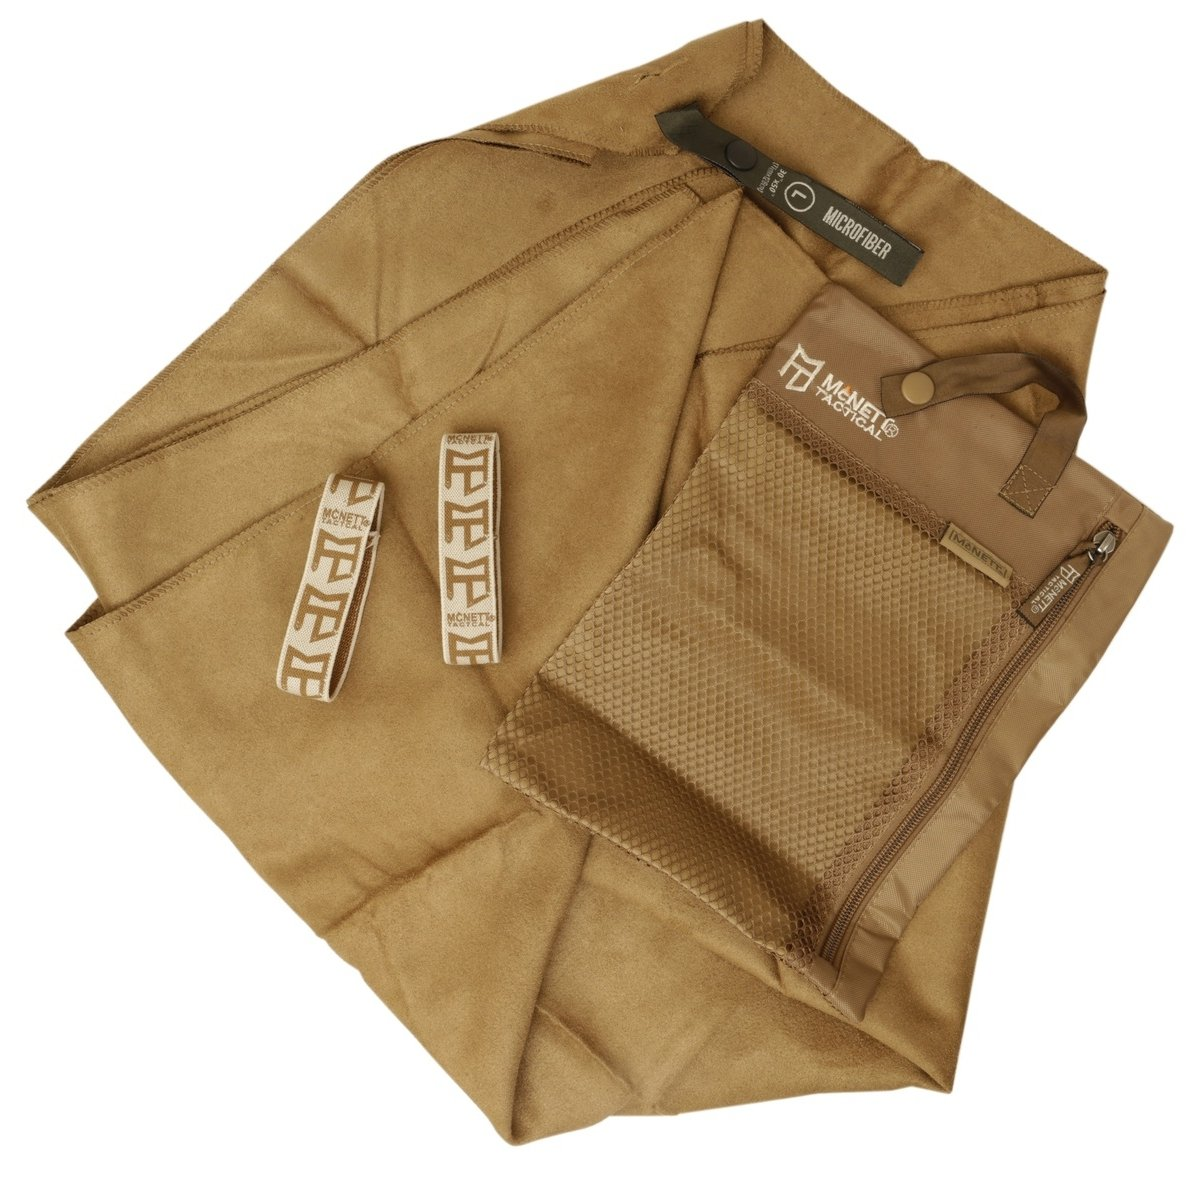 McNett Tactical Compact Microfiber Towel